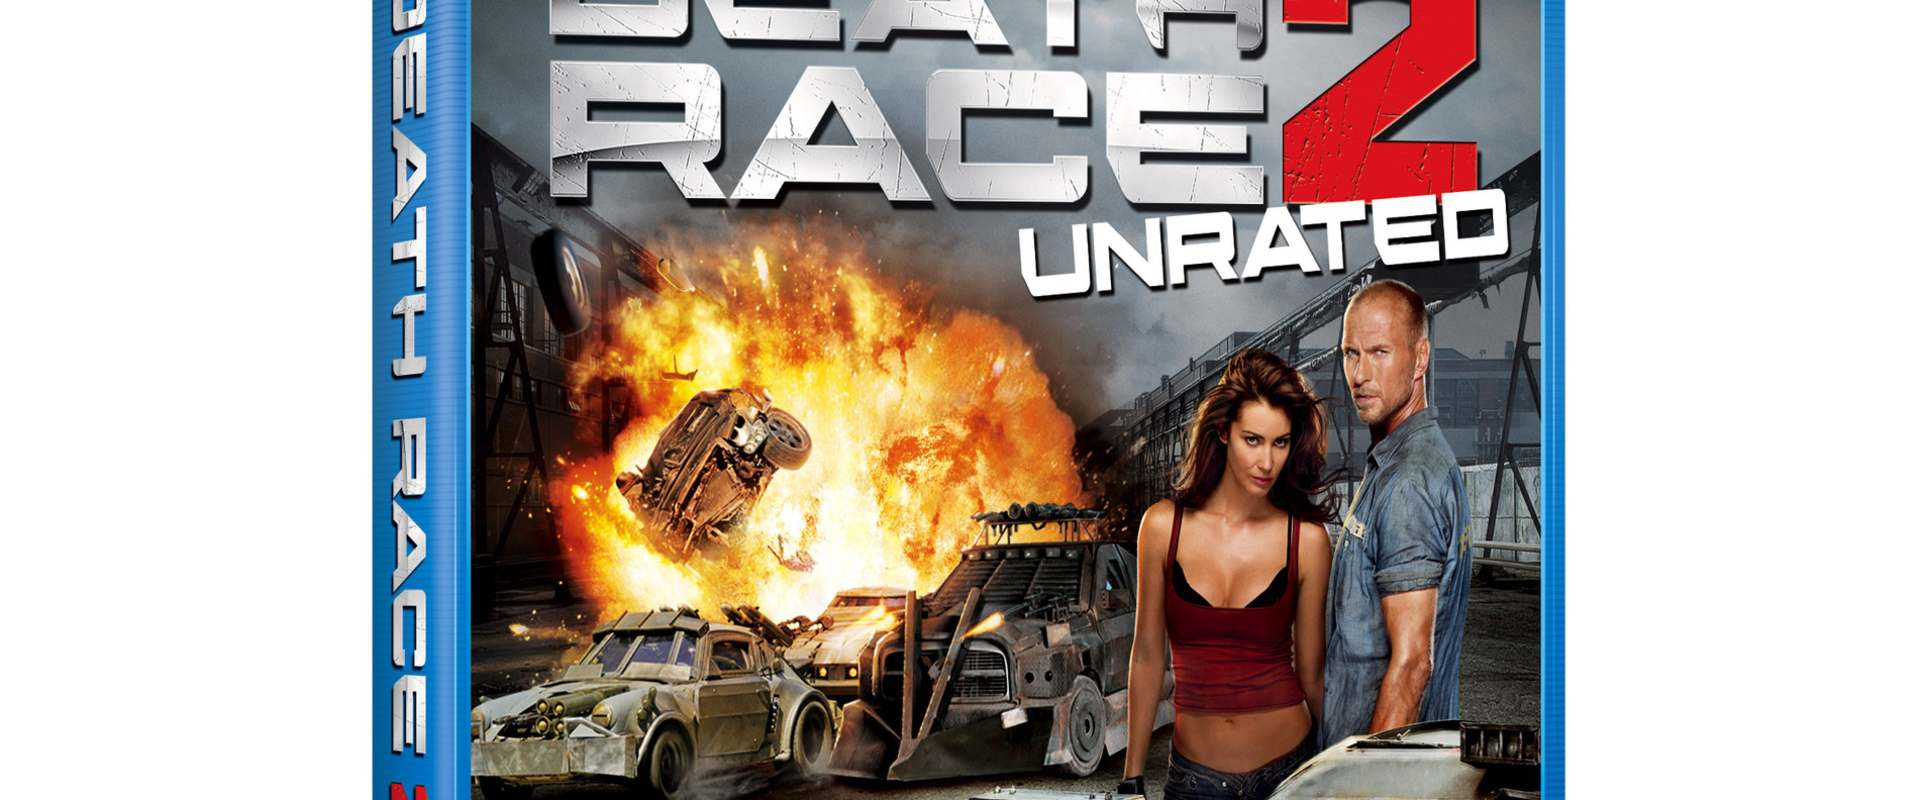 Death Race 2 background 1